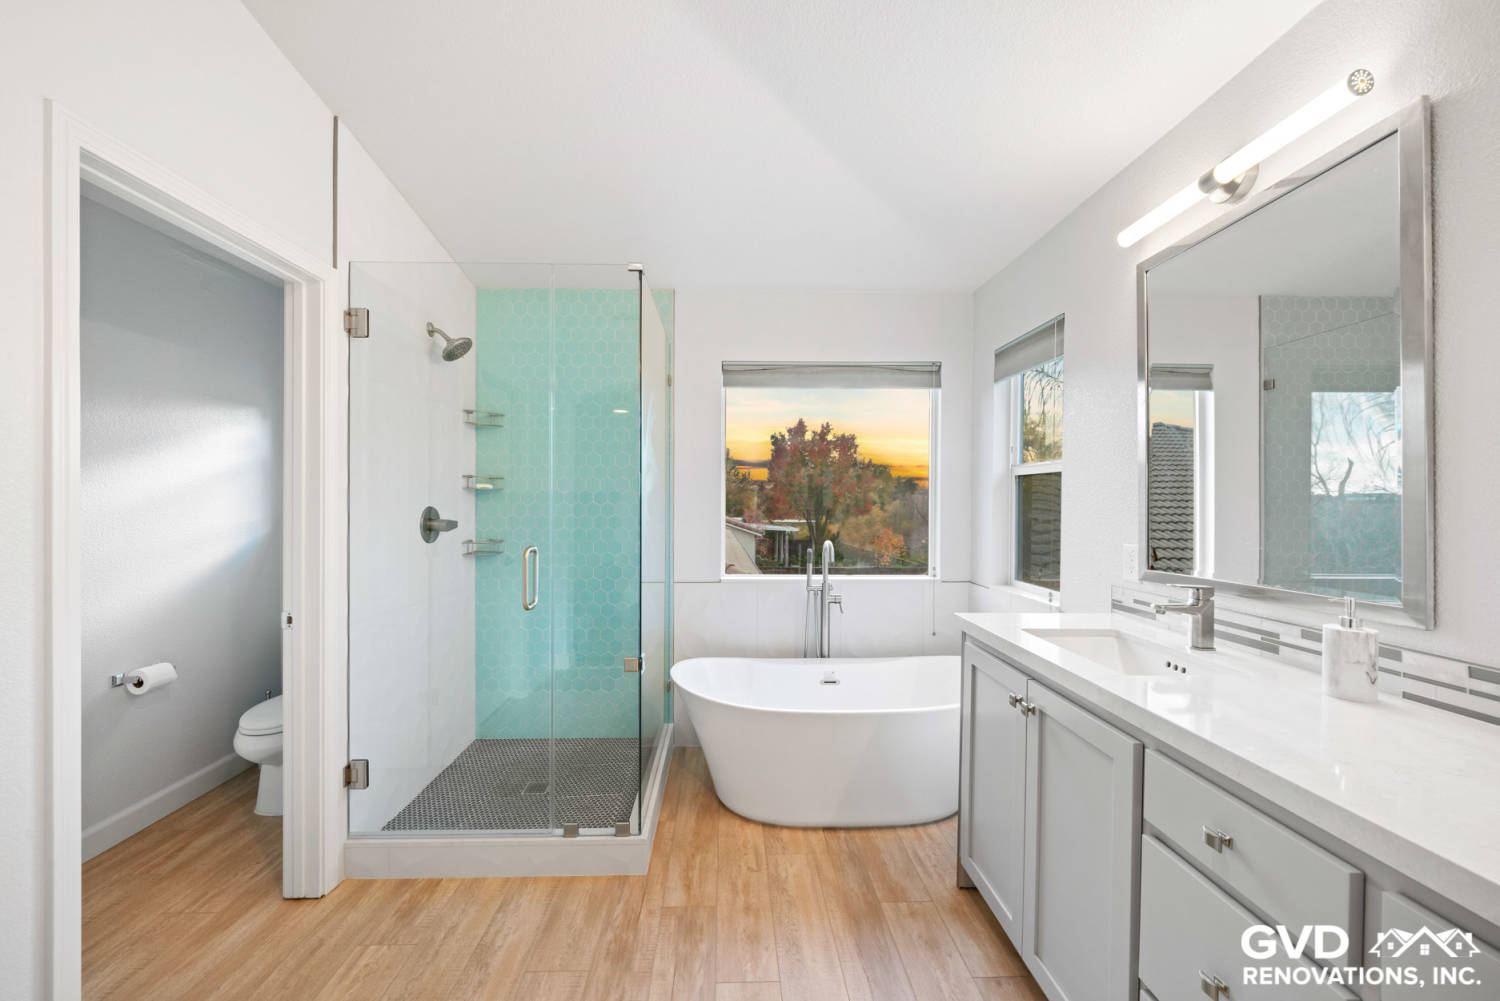 How Much Is The Average Cost Of A Bathroom Remodel